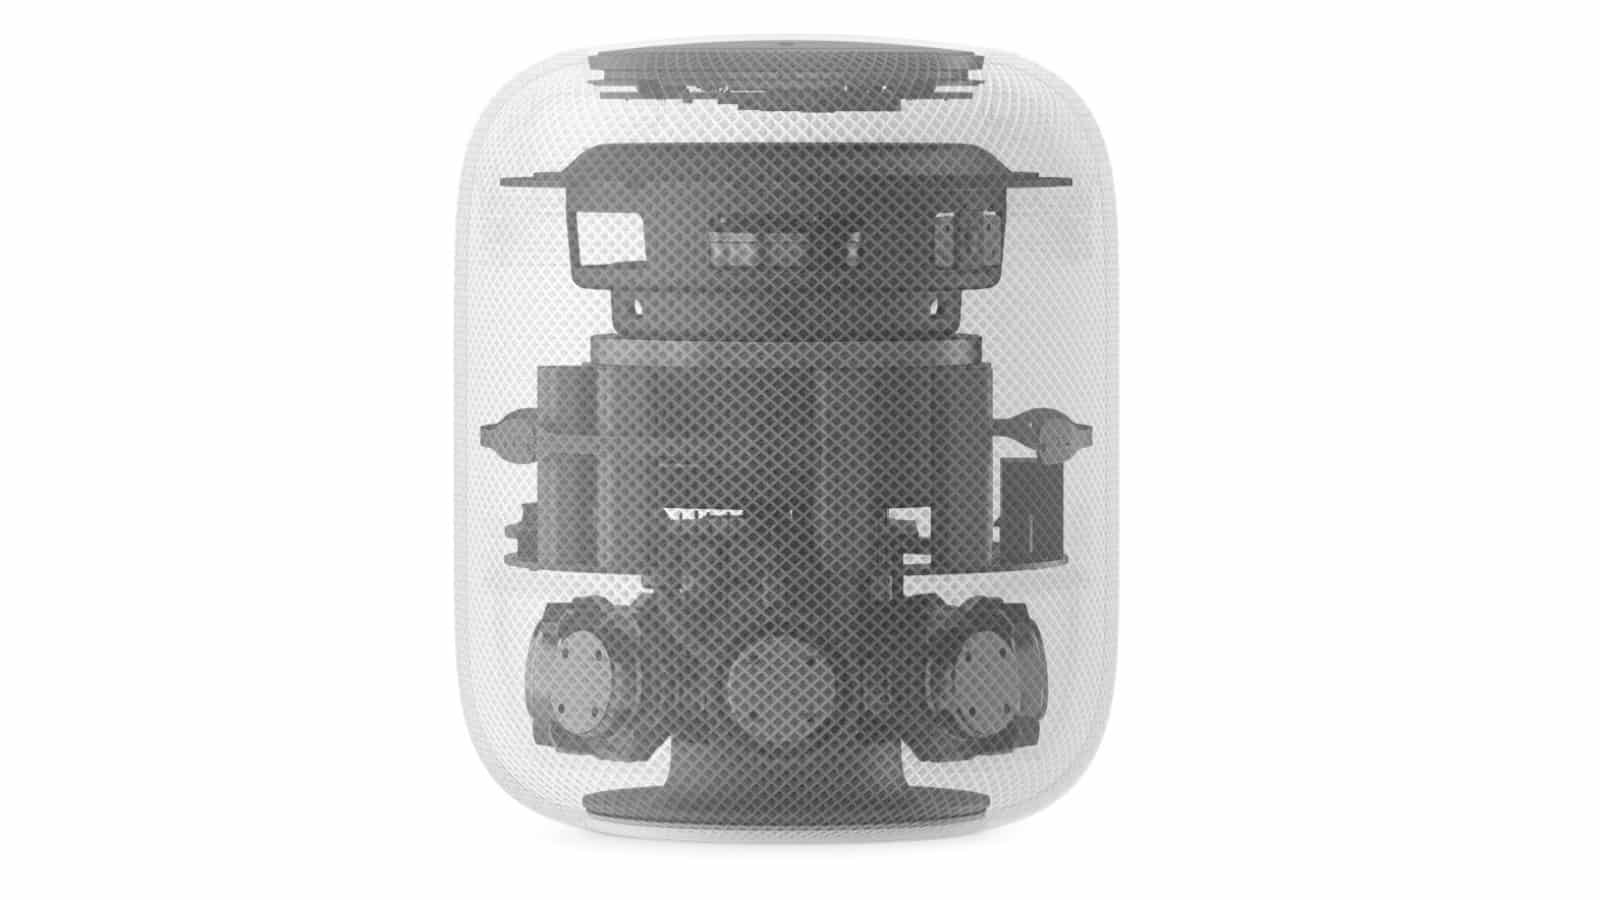 apple homepod transparent view to show the internal components